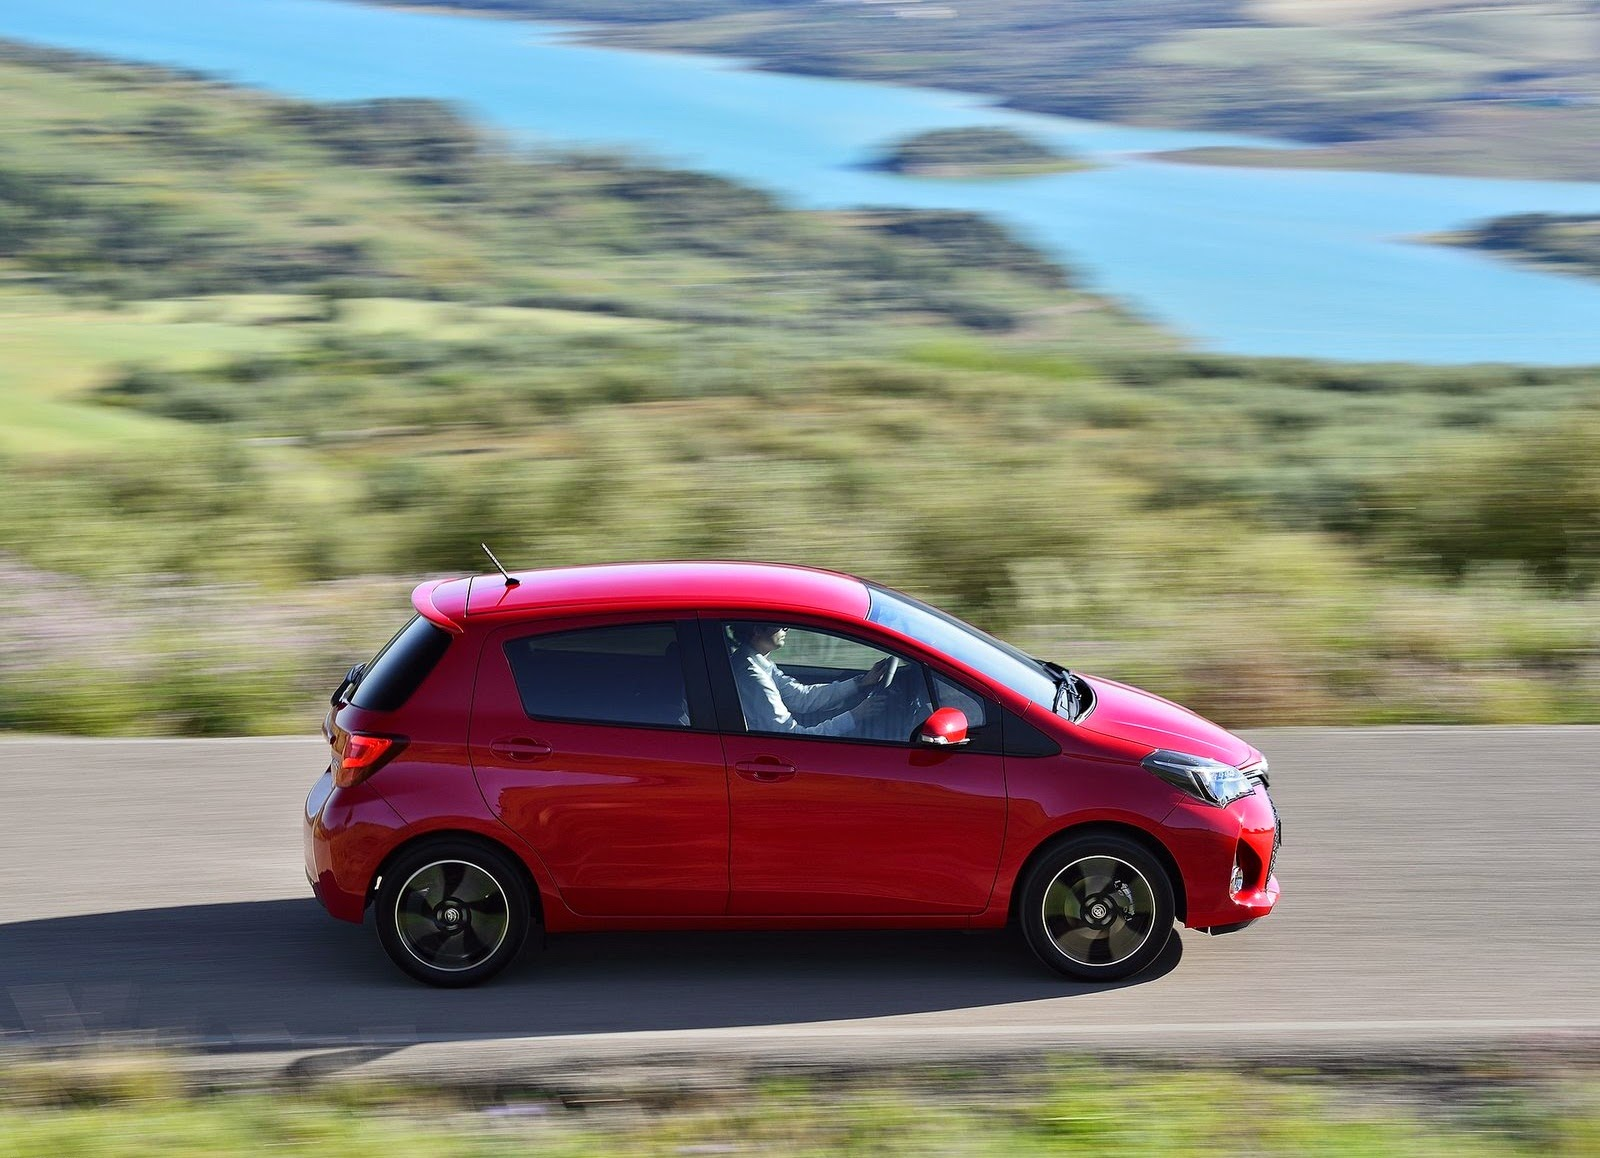 toyota yaris 2015 awesome wallpaper car wallpaper hd. Black Bedroom Furniture Sets. Home Design Ideas